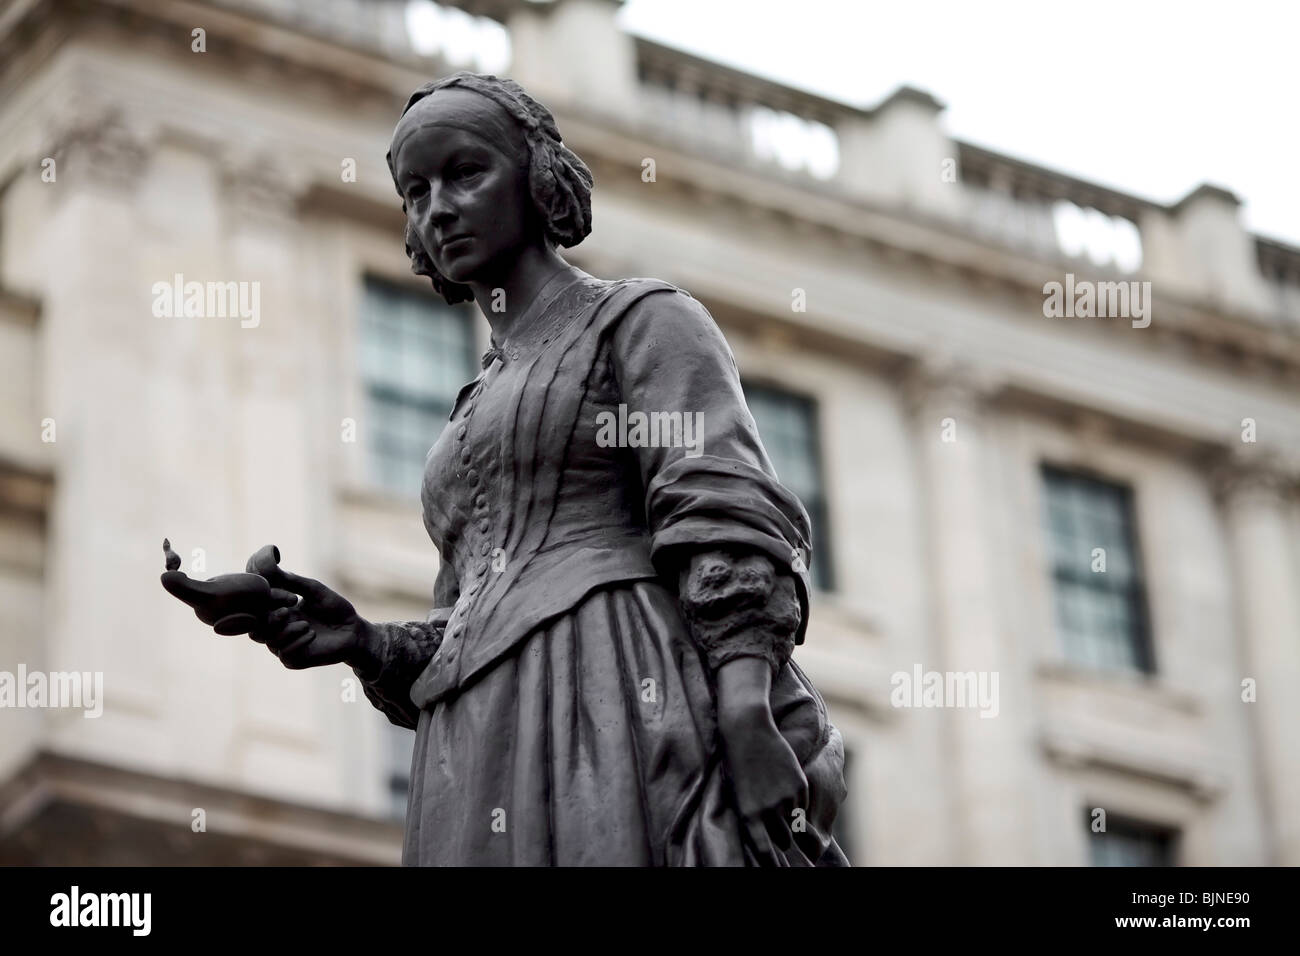 Statue Of Florence Nightingale Known As The Lady Of The Lamp In The Crimean  War Near The Guards Monument In London